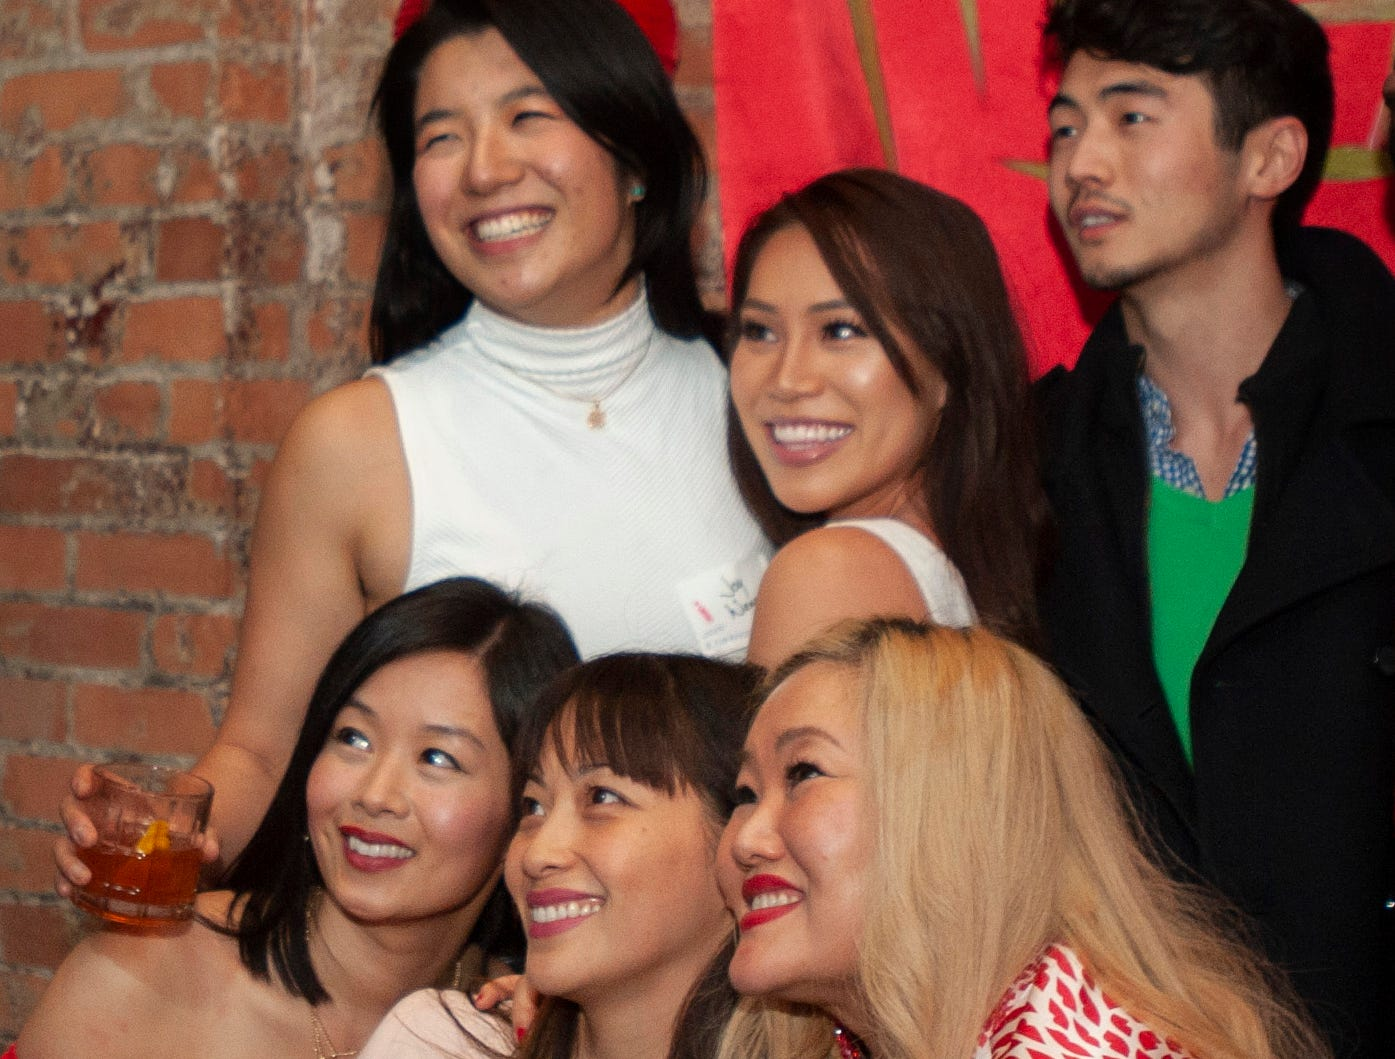 Over the Moon party organizers (top row, from left) Joy Wang, Michelle Nguyen, Stephen Oh and (bottom row, from left) Jennifer Vuong, Gowhnou Lee and Esther Kim pose for a group photo while celebrating the Lunar New Year  east-Asian style at Detroit City Distillery in Eastern Market on Thursday, February 7, 2019.